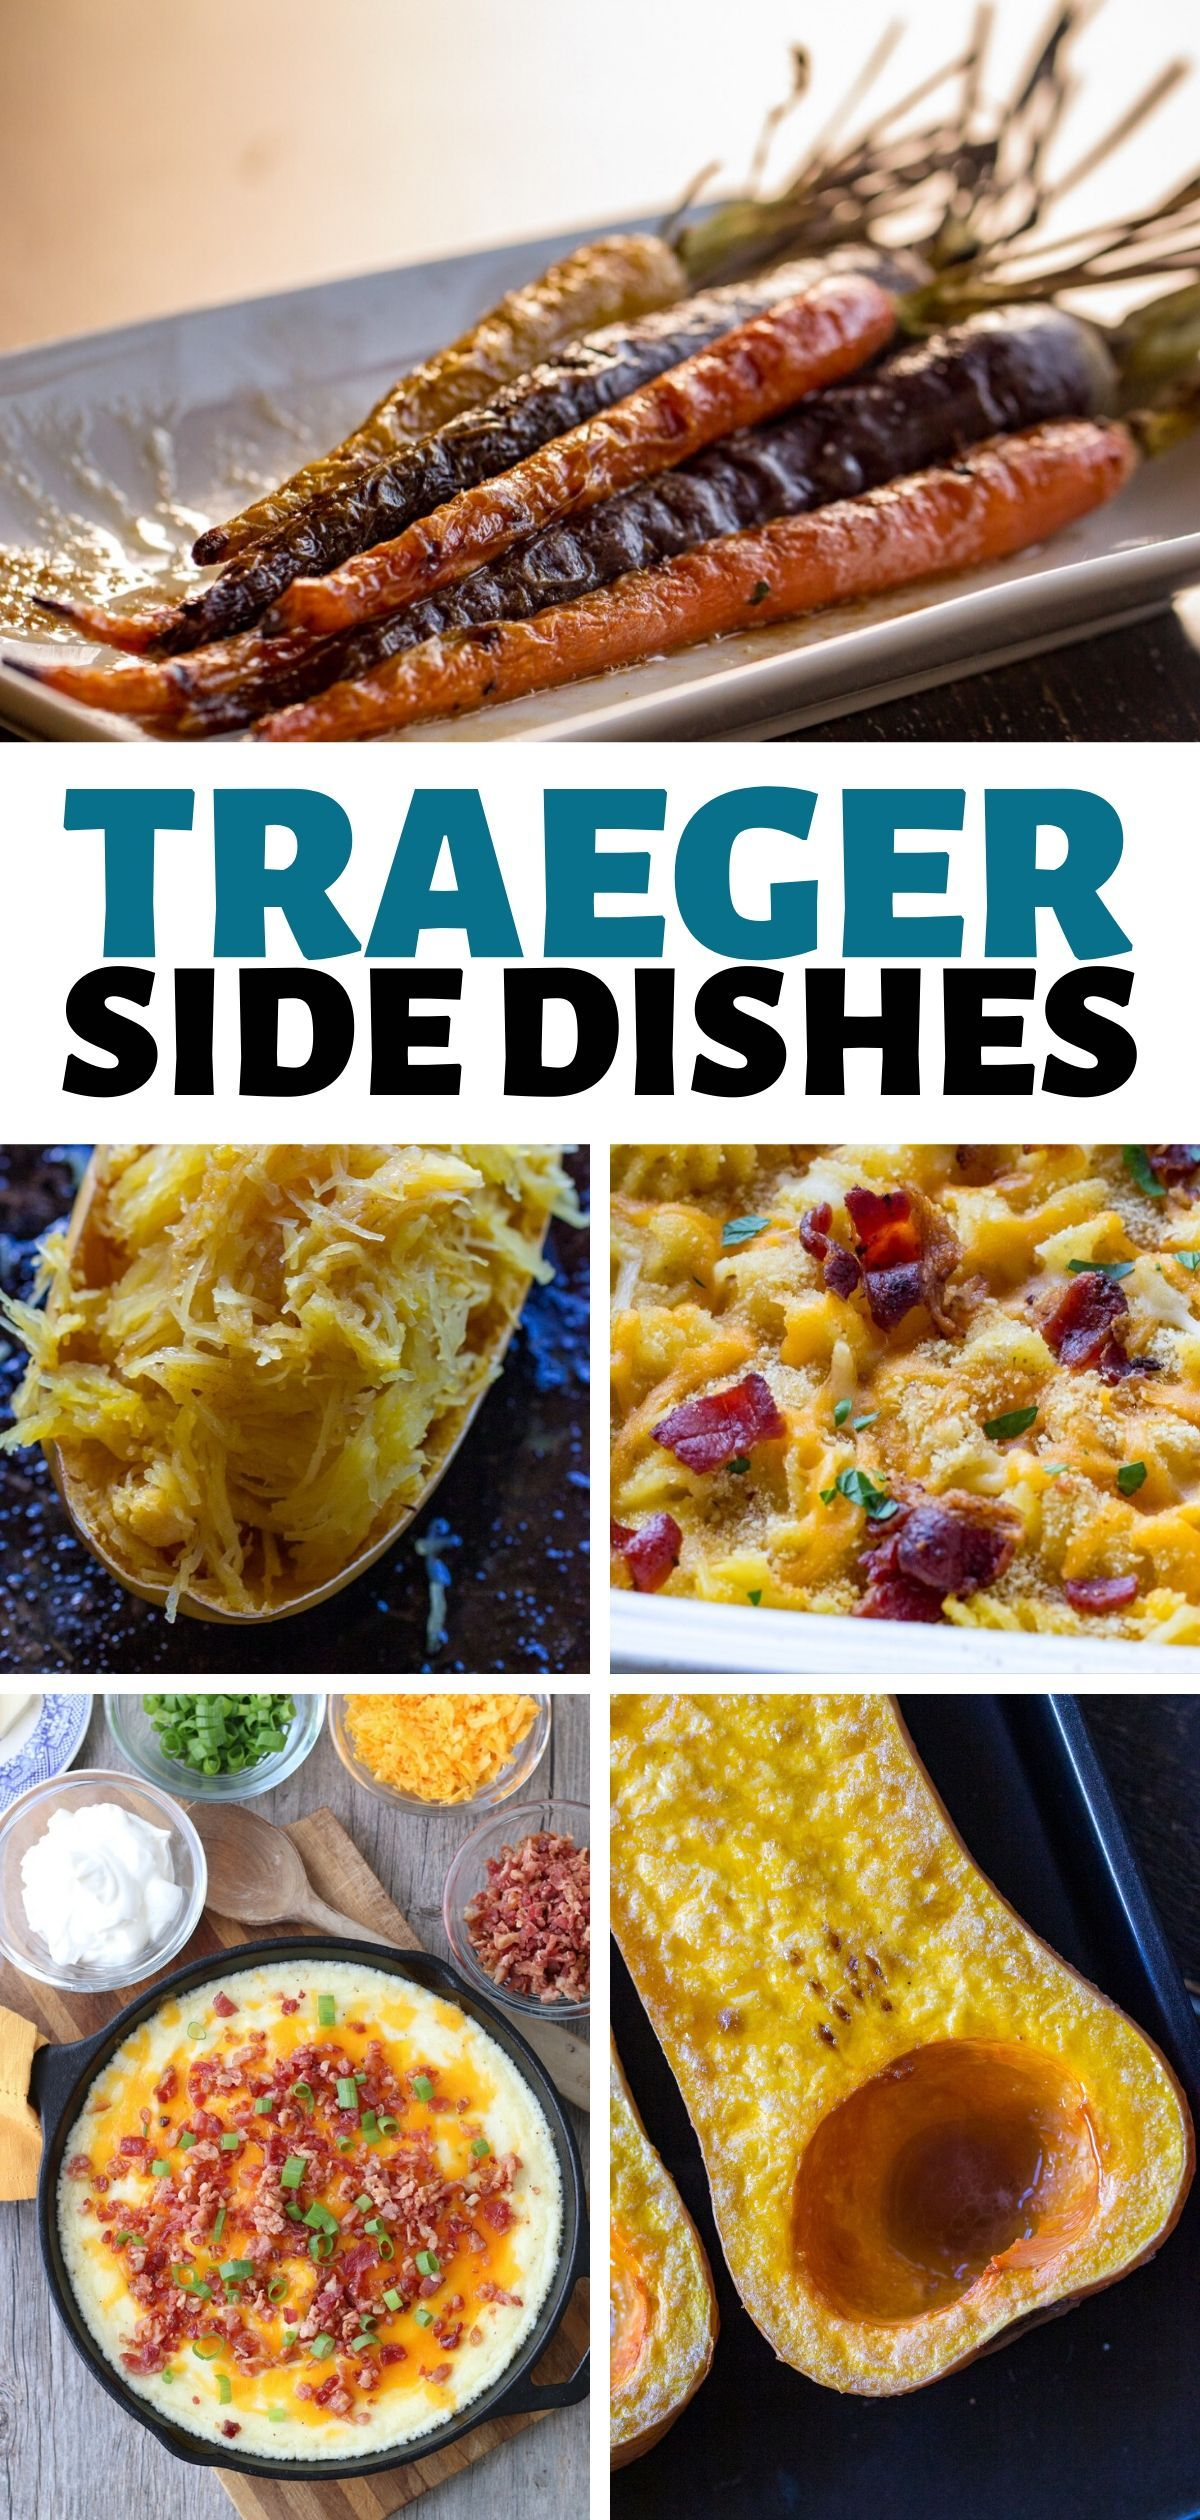 Traeger Side Dishes In 2020 Grilled Side Dishes Outdoor Cooking Recipes Grilling Sides